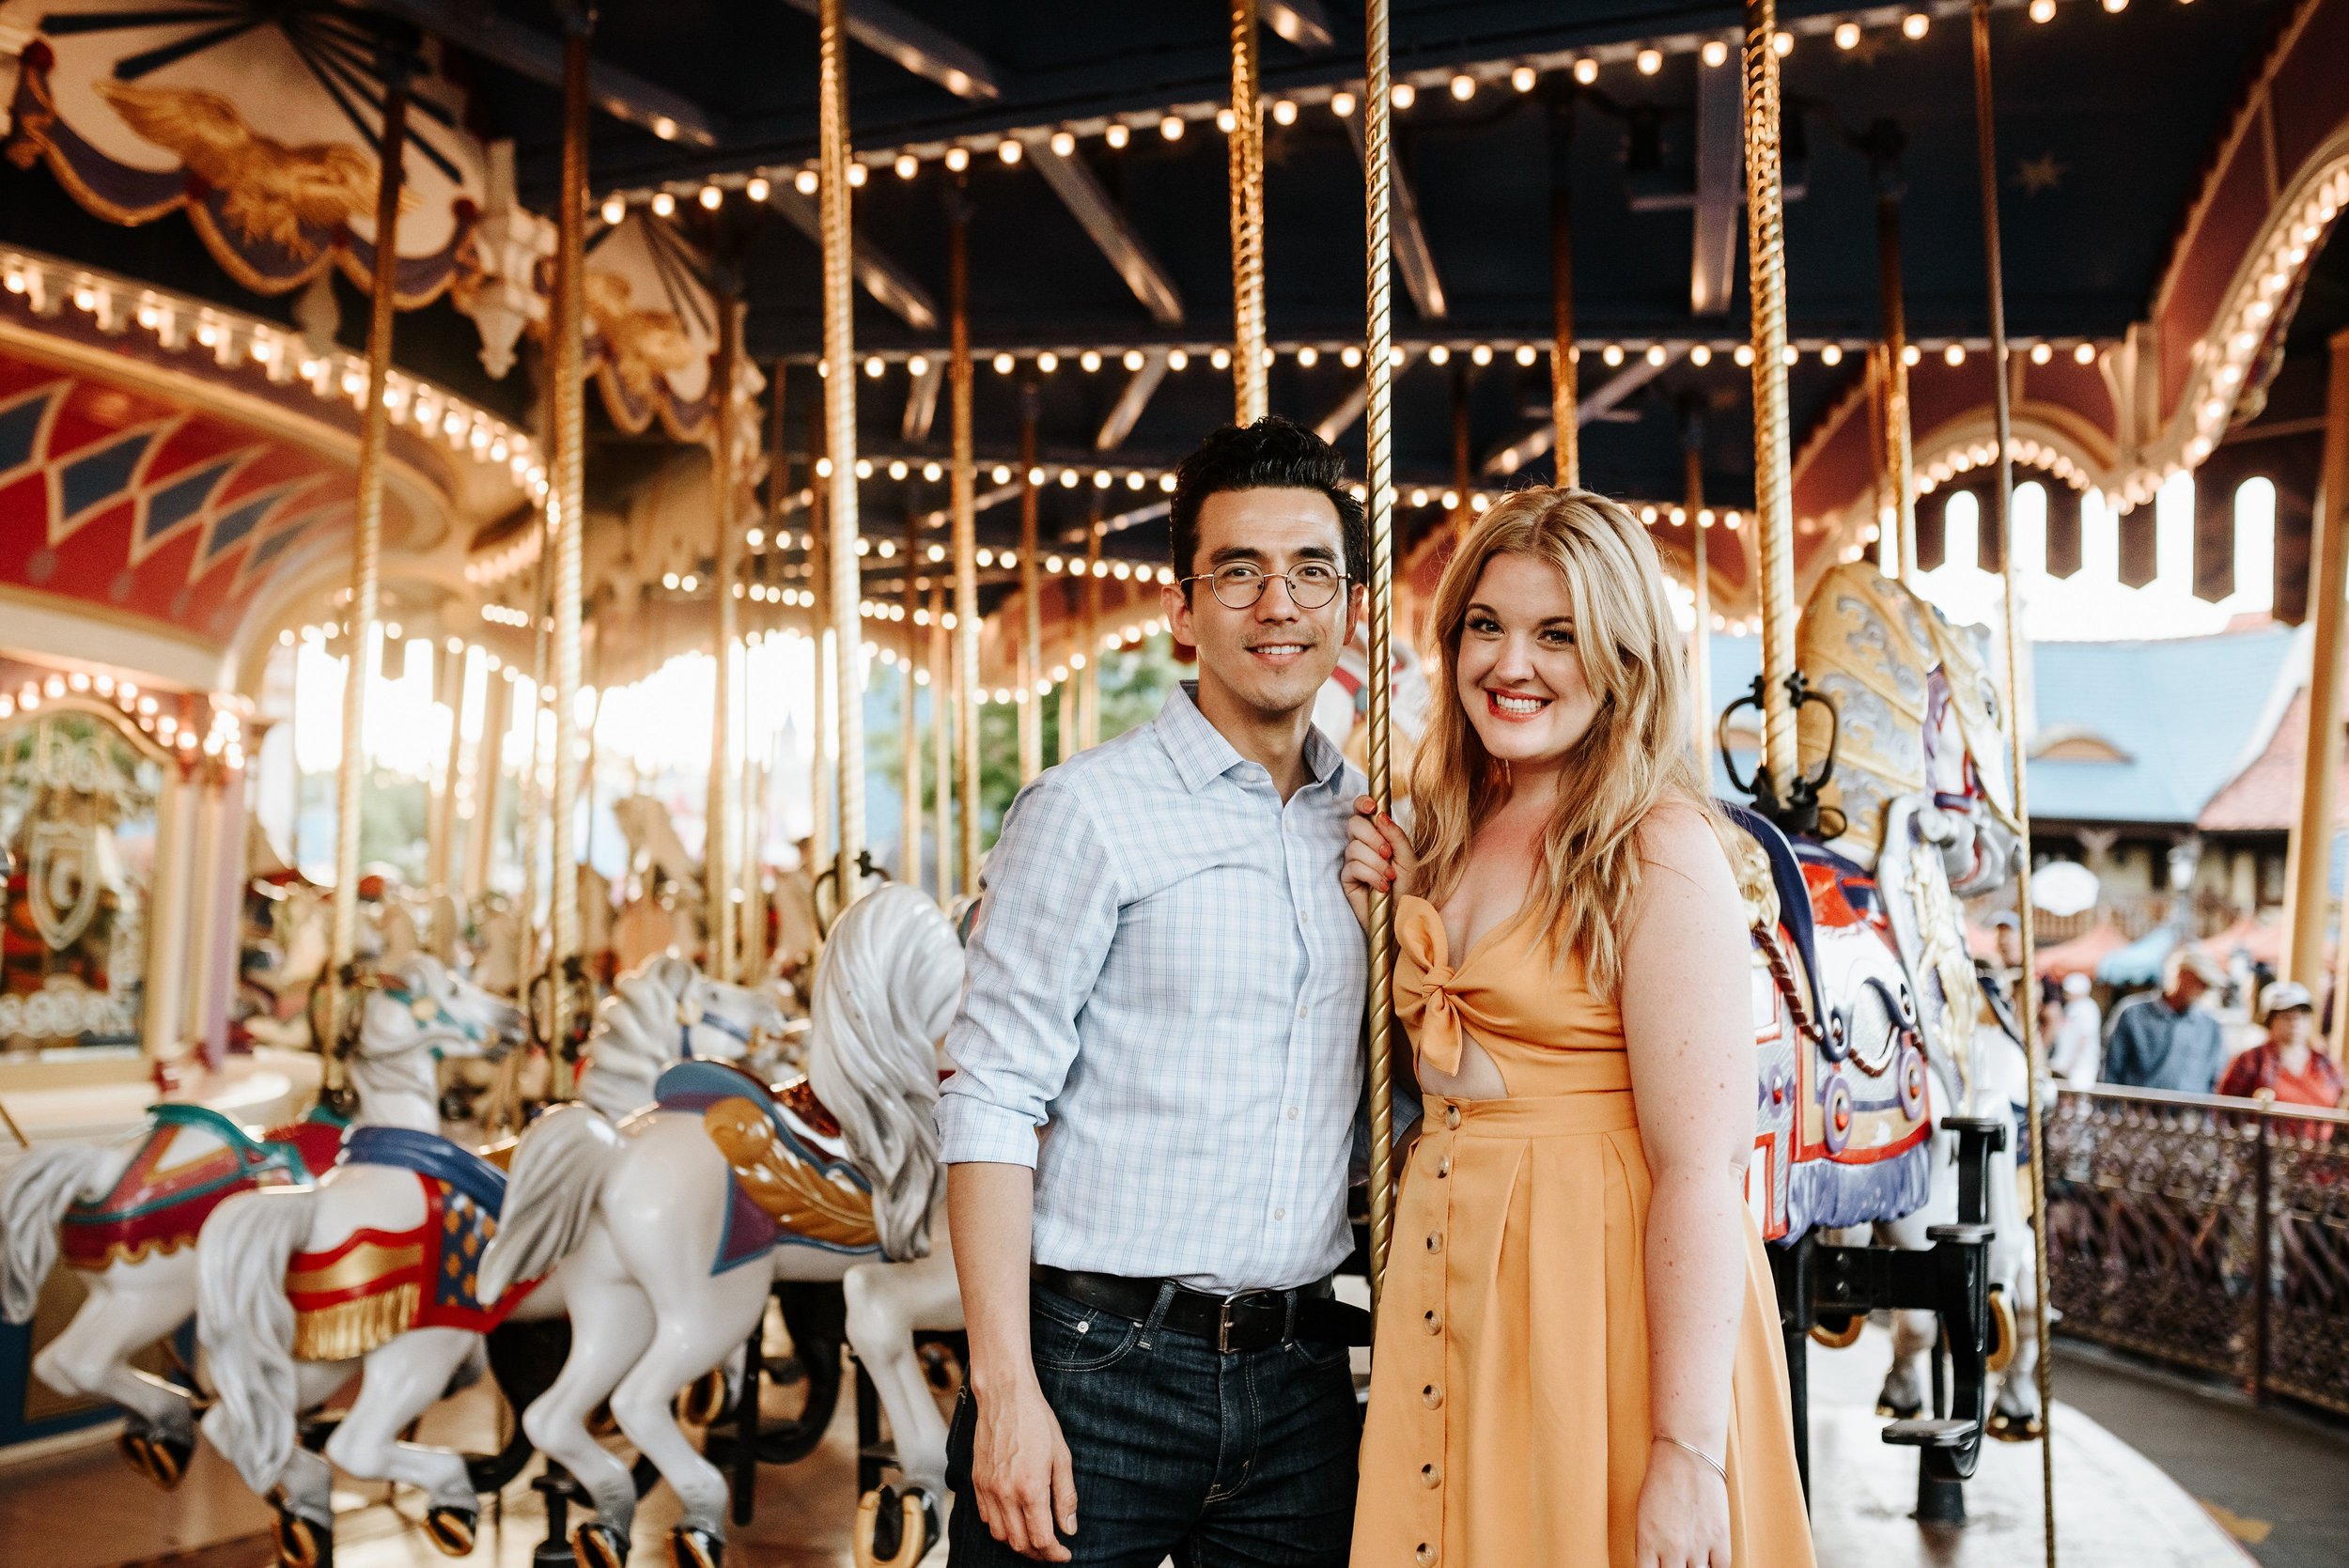 Kelsey_John_Disney_Magic_Kingdom_Engagement_Session_Orlando_Florida_Wedding_Photography_by_V_2407.jpg